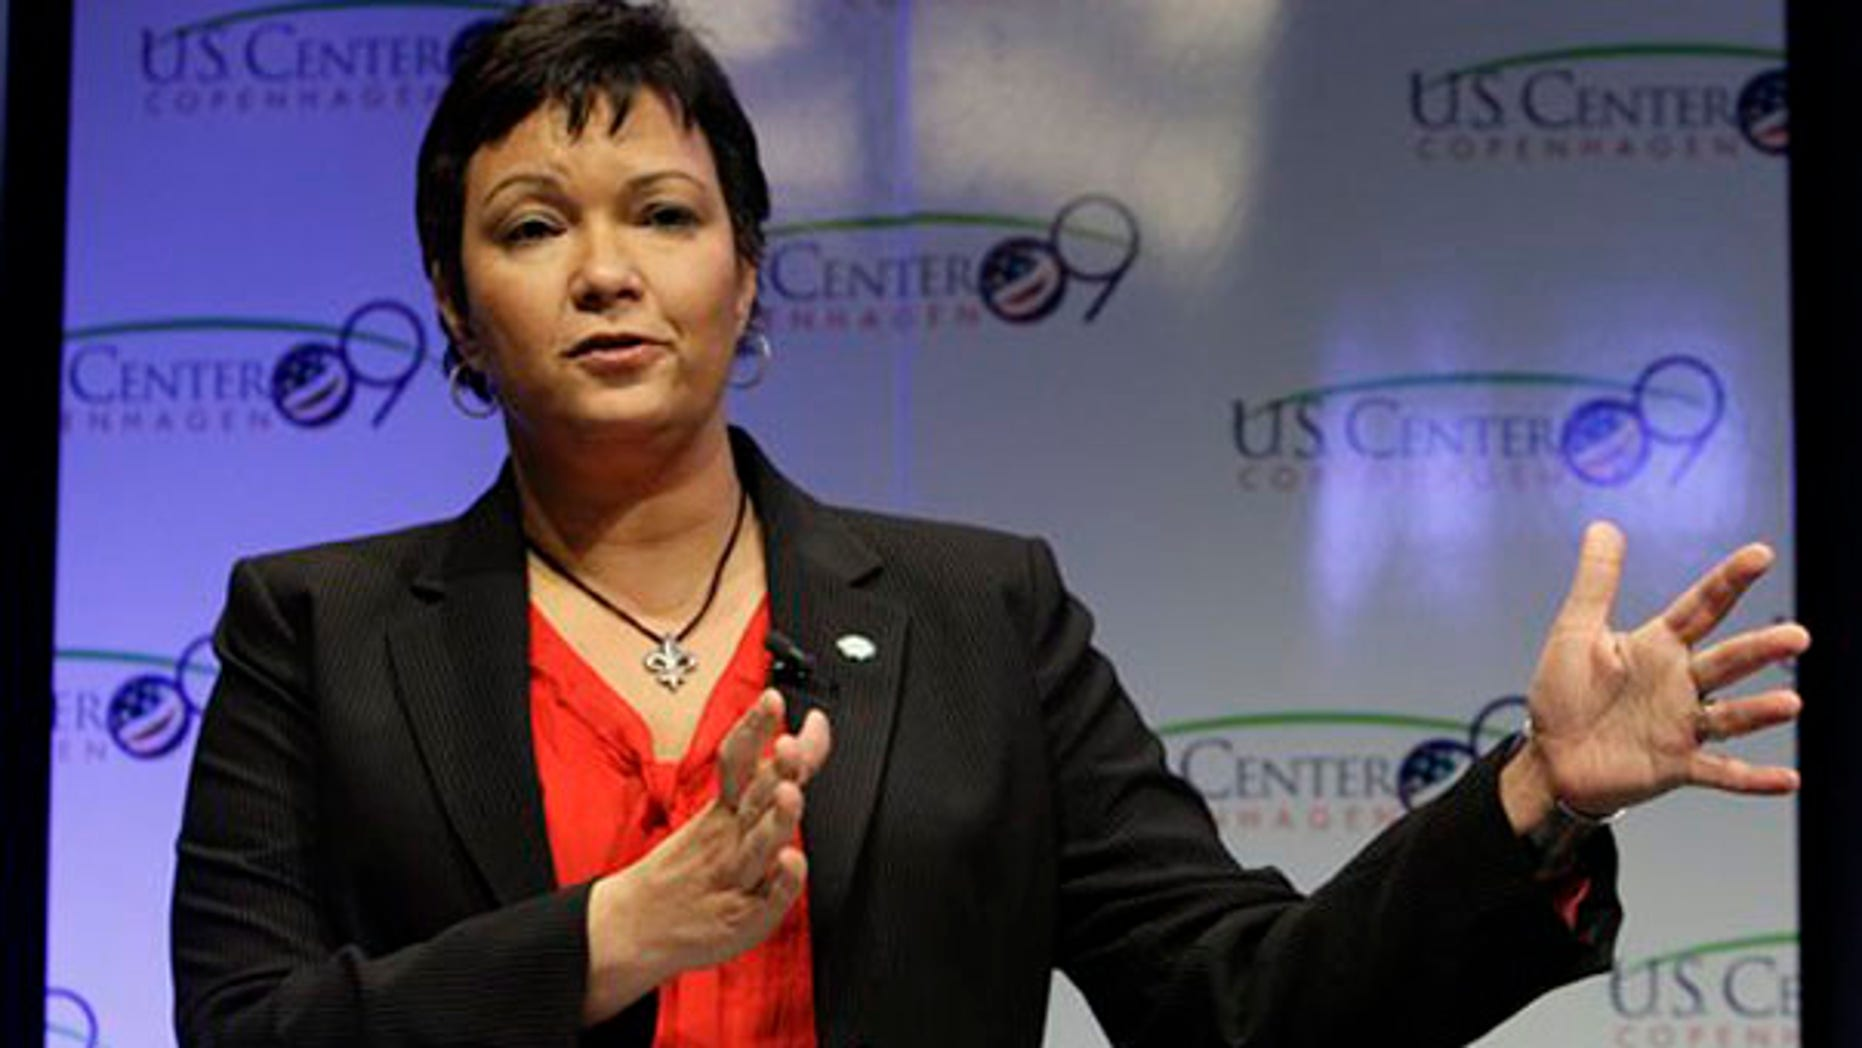 EPA Administrator Lisa Jackson gestures during a briefing in the U.S. center at the Climate Conference in Copenhagen Dec. 9. (AP Photo)